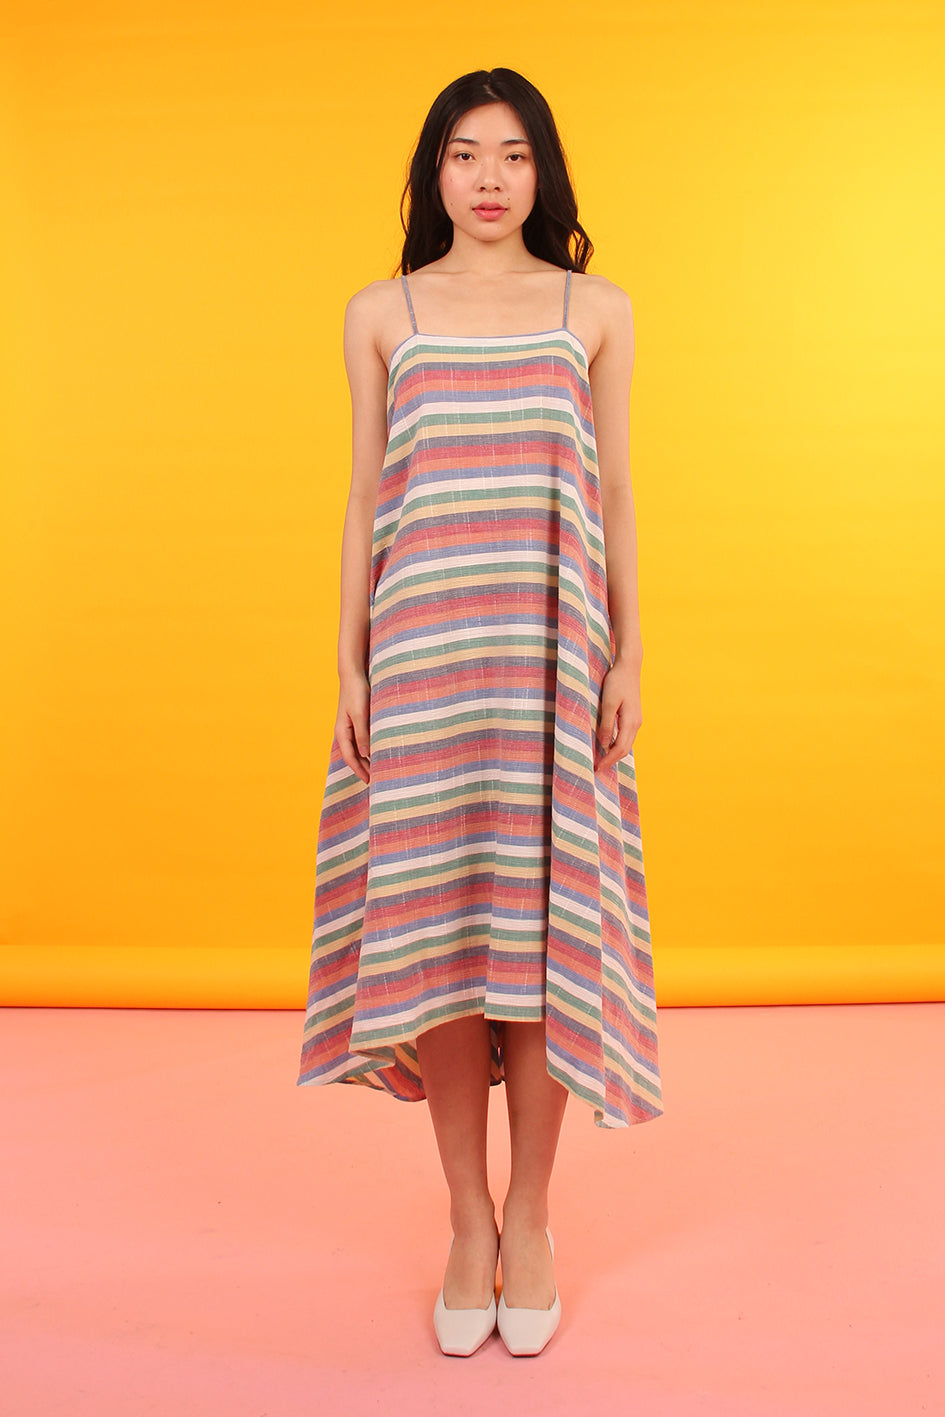 TeePee Dress (Rainbow)